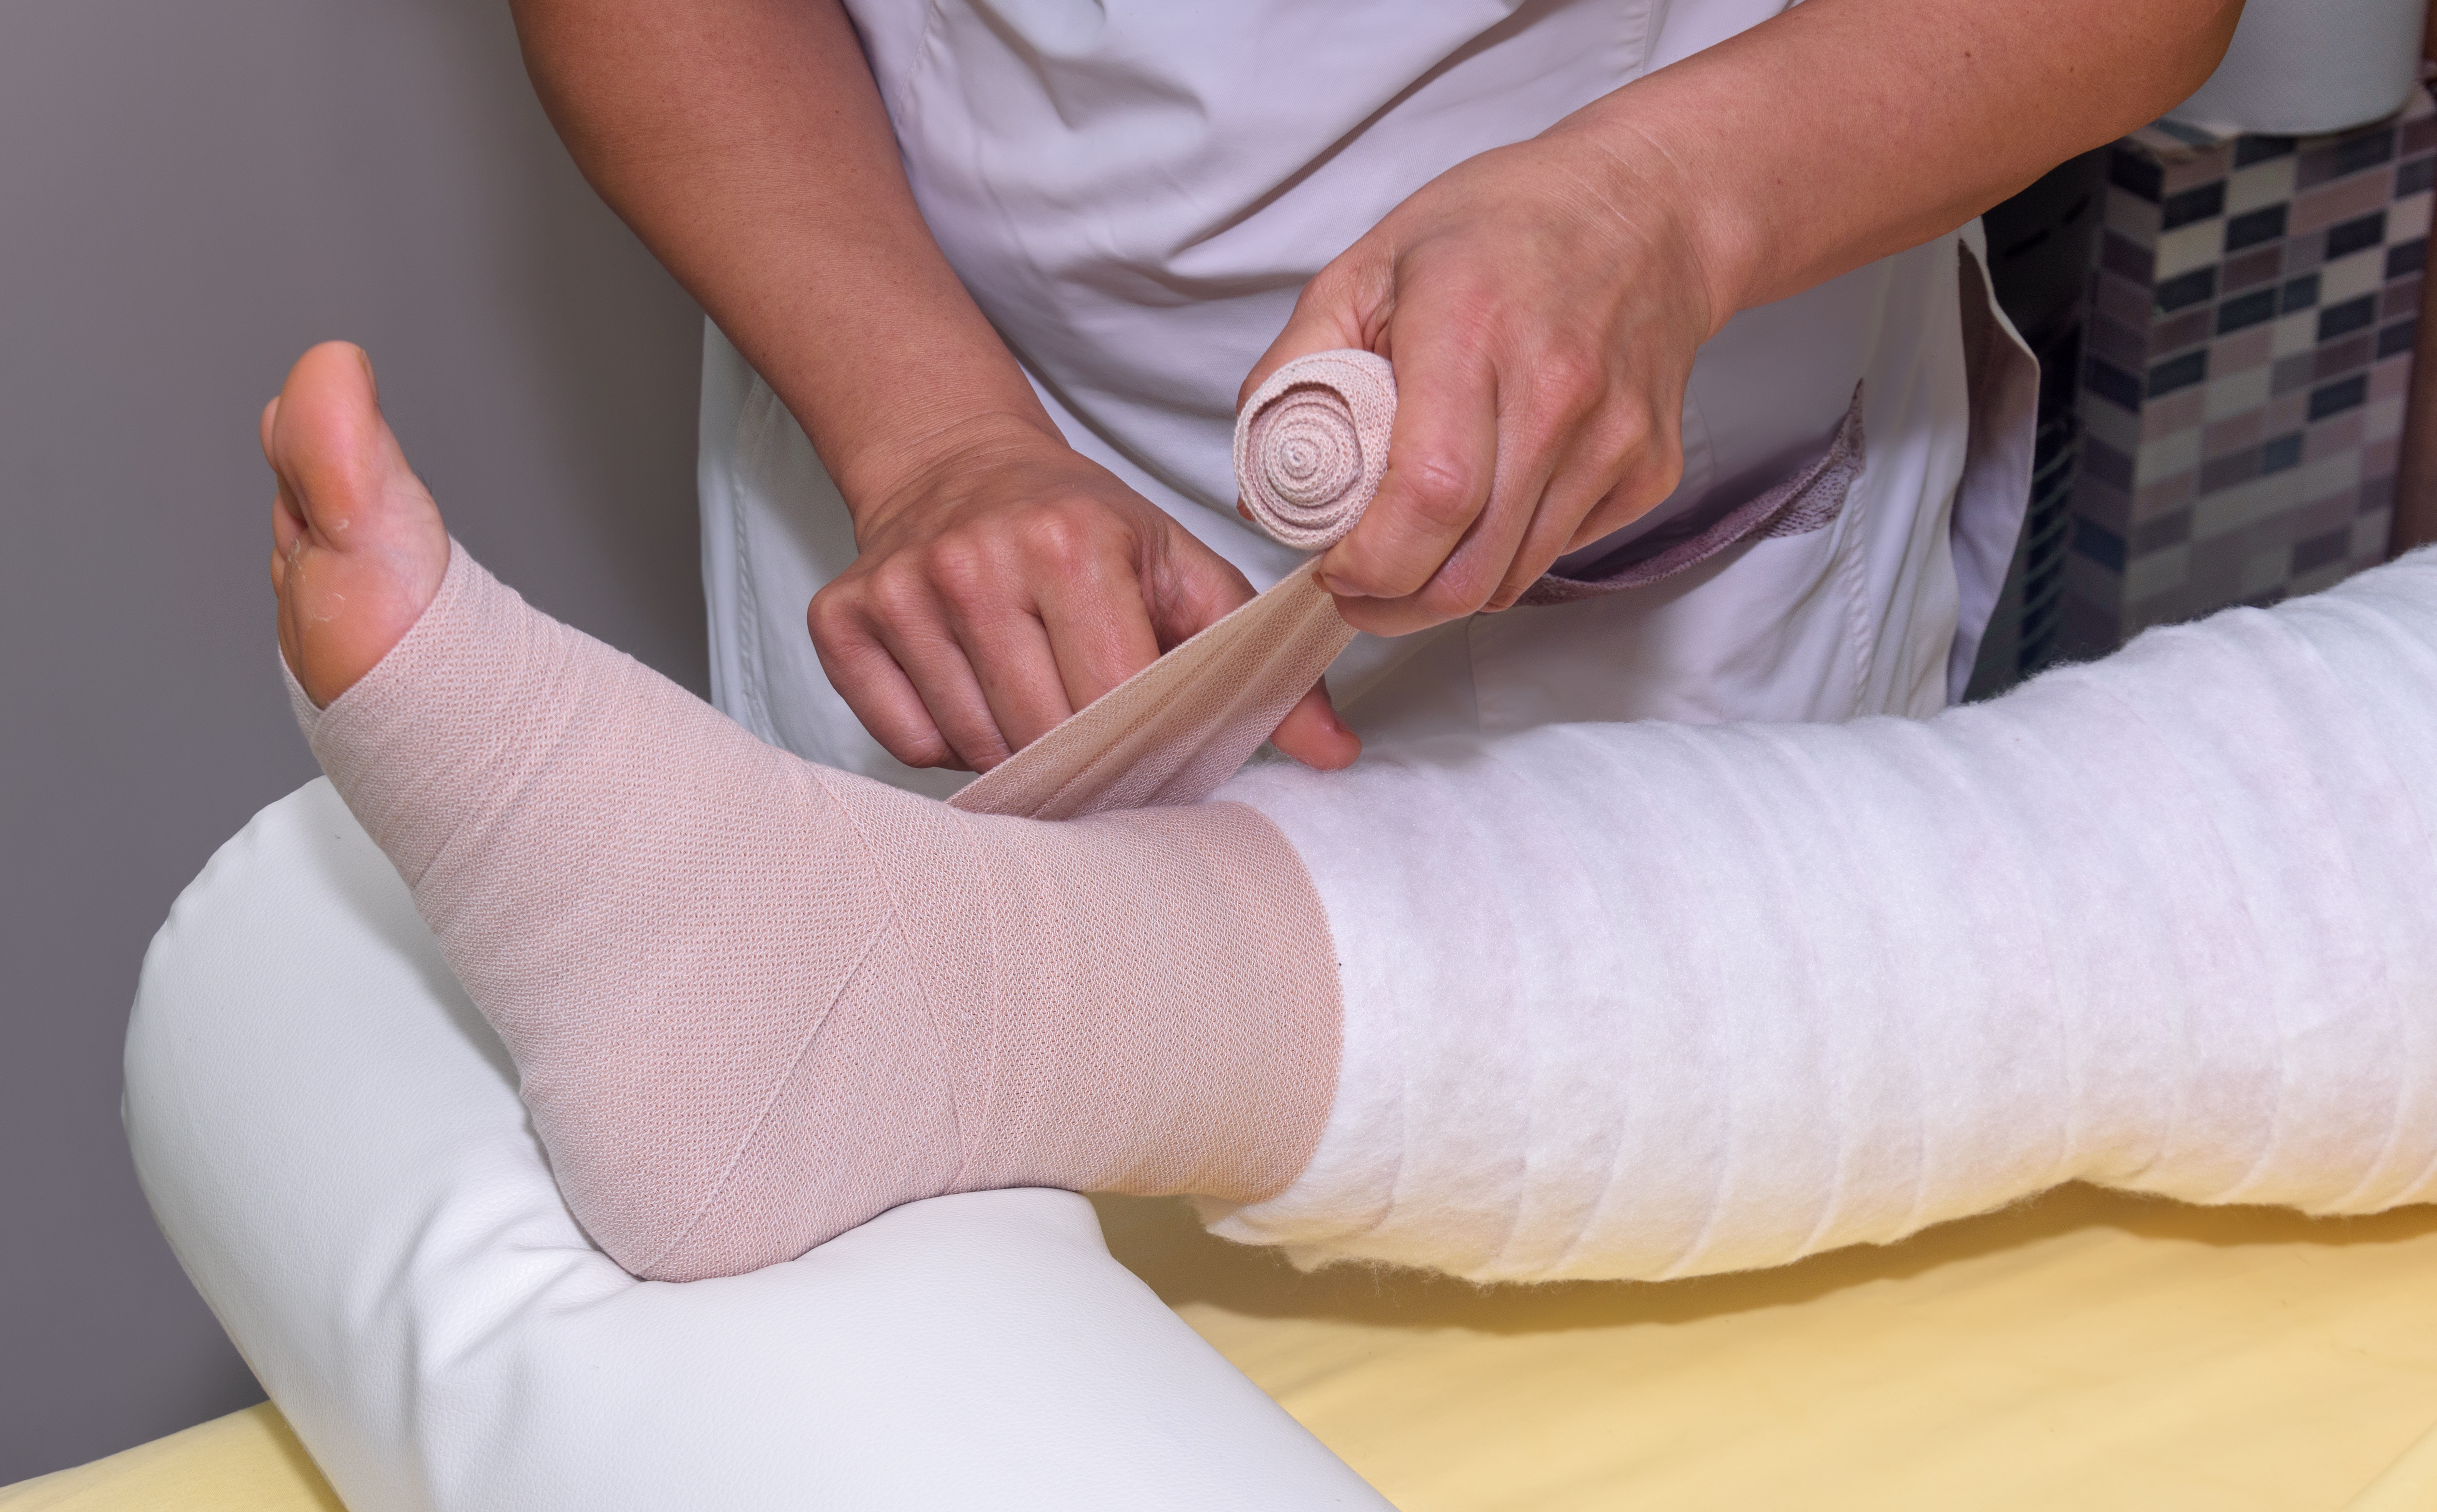 Bandaging and padding a leg